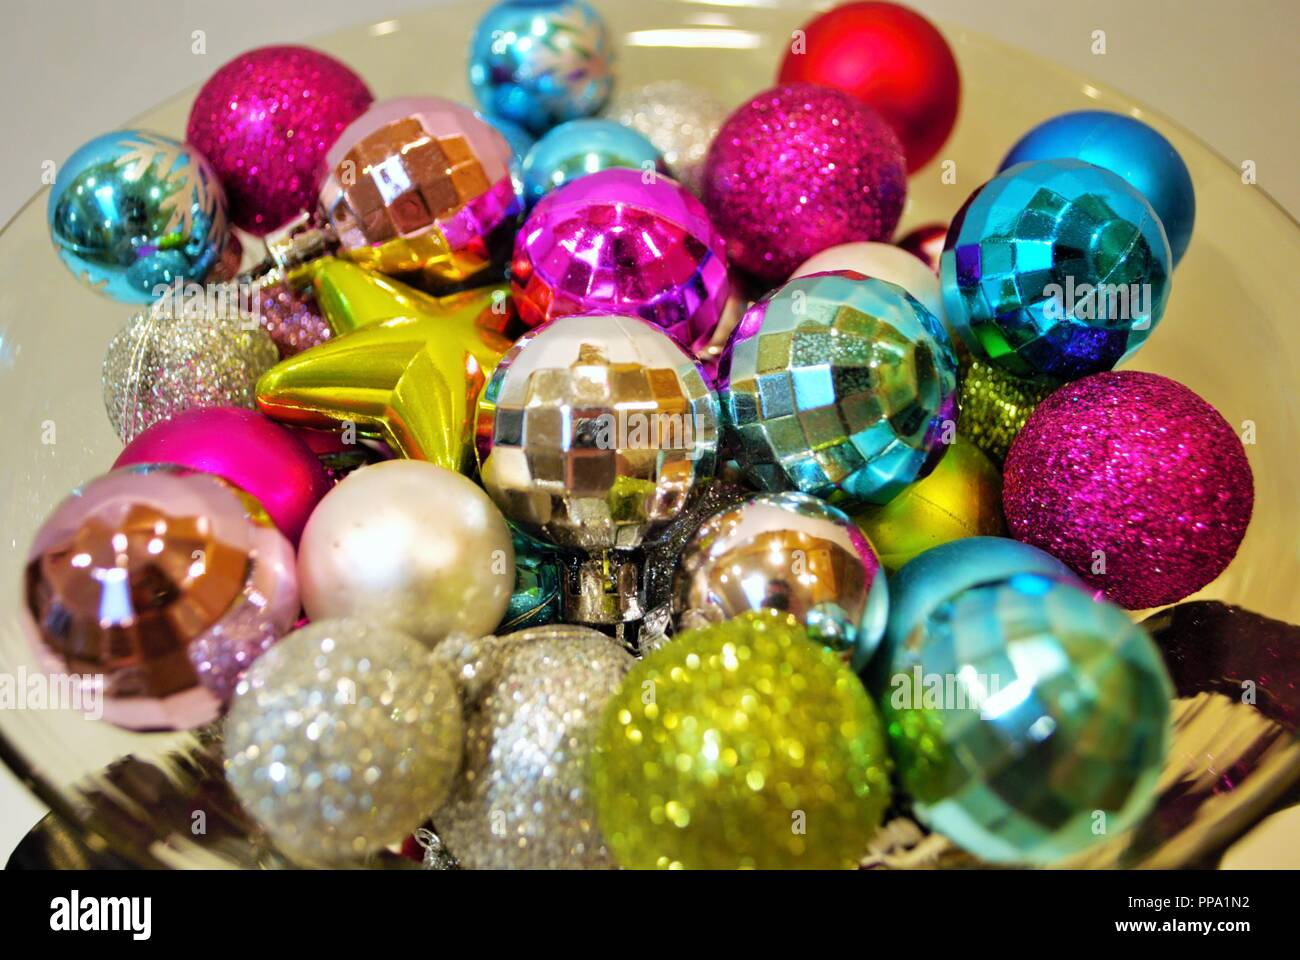 Christmas Decorations In A Bowl High Resolution Stock Photography ...